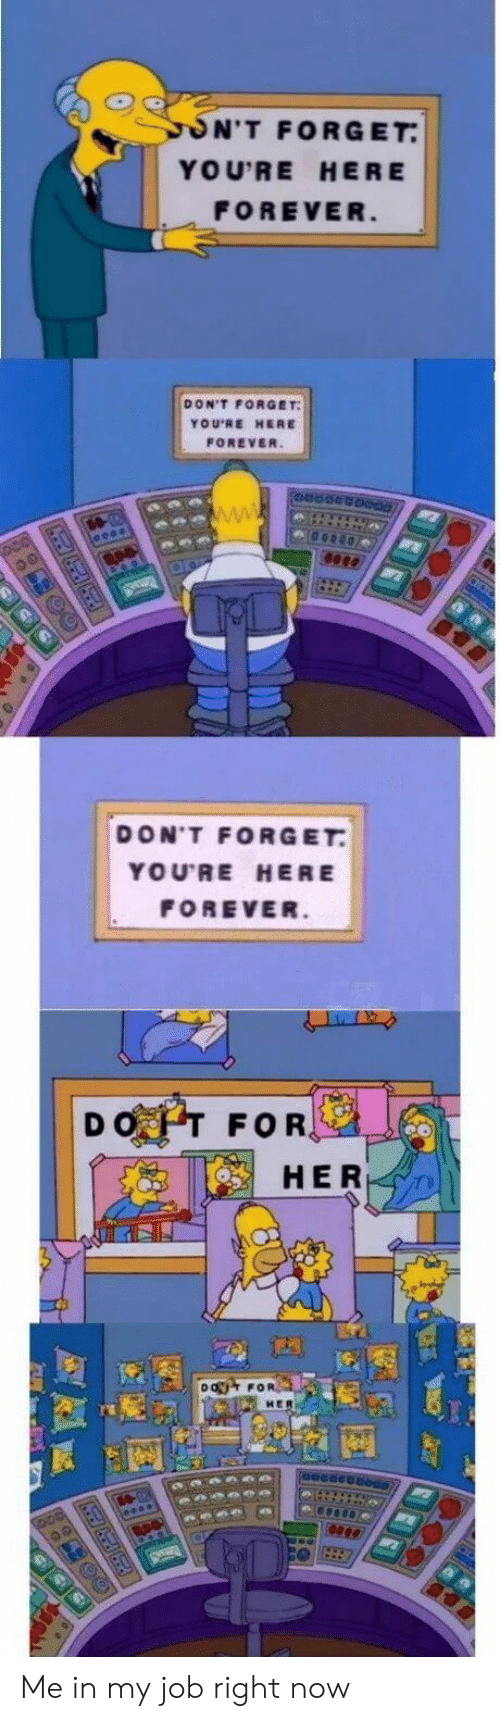 Youre Here Forever: ON'T FORGET  YOU'RE HERE  FOREVER  DON'T FORGET  YOU'RE HERE  FOREVER.  DON'T FORGET  YOU'RE HERE  FOREVER.  DOT FOR,  HER  DO FOR Me in my job right now